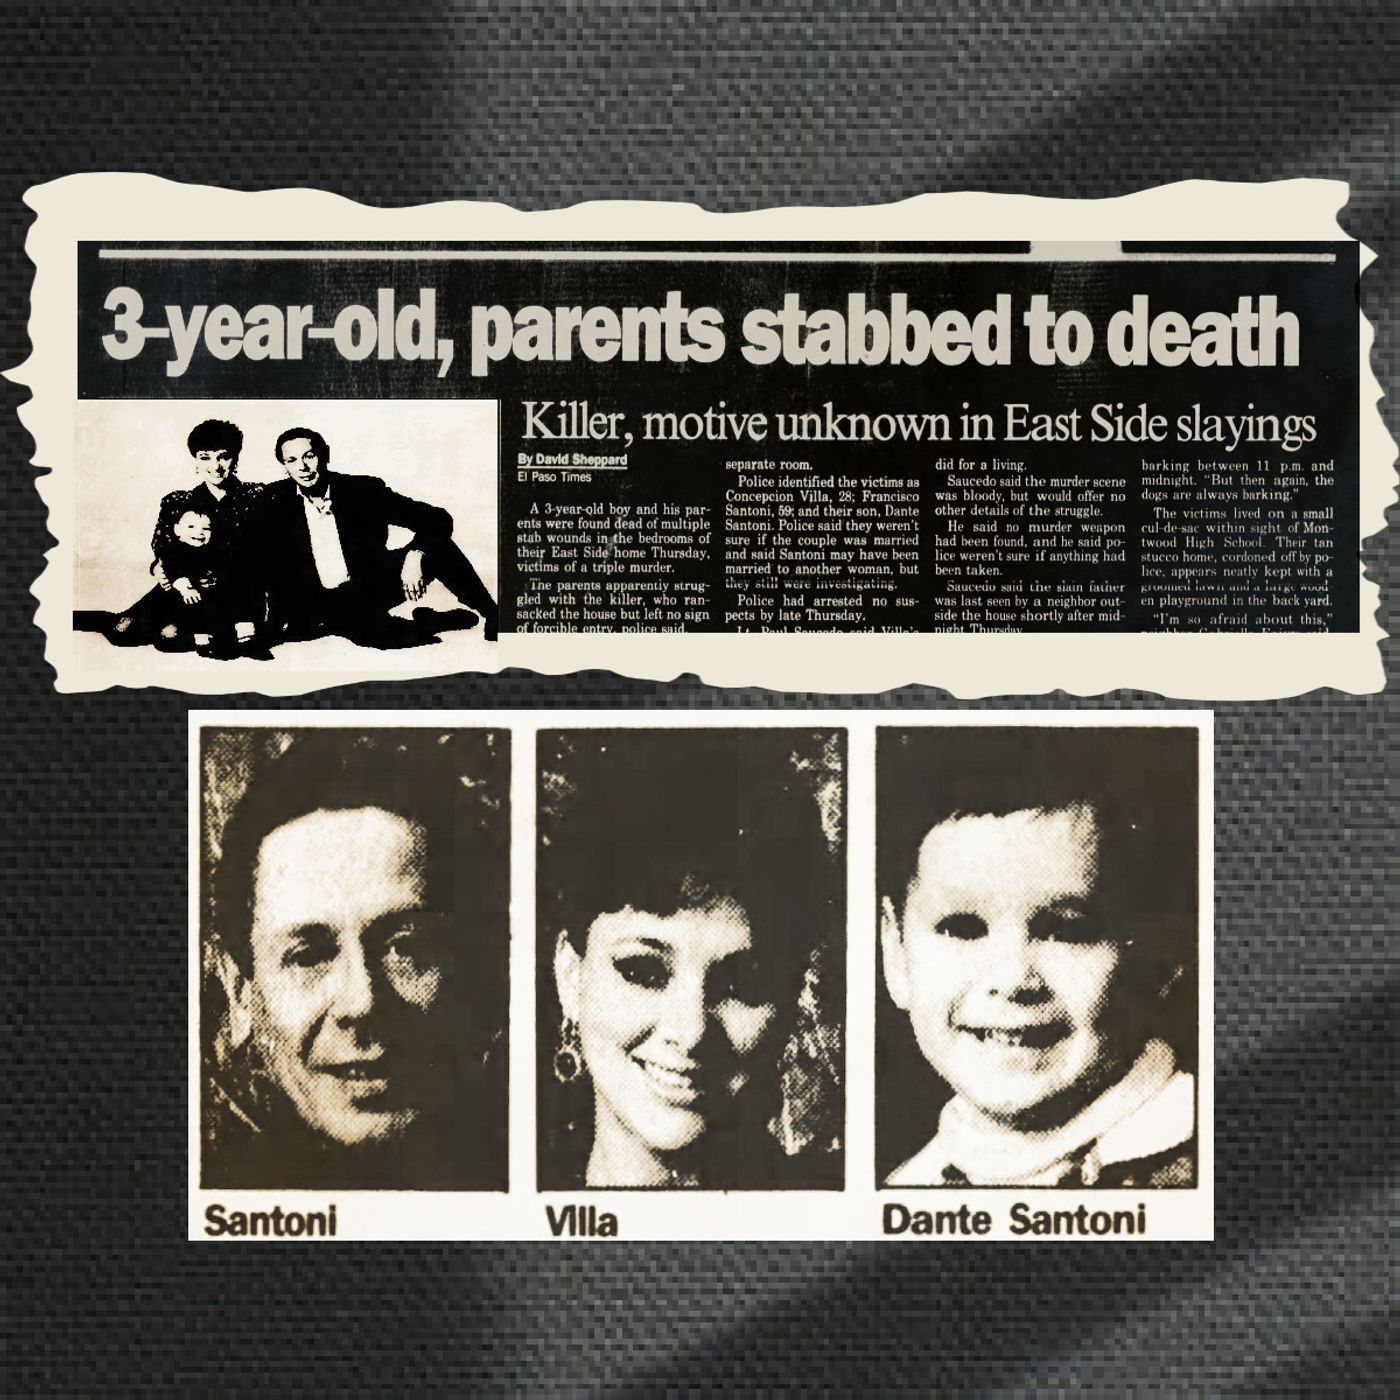 Death of a Family: The Slayings of Frank, Connie, & Dante